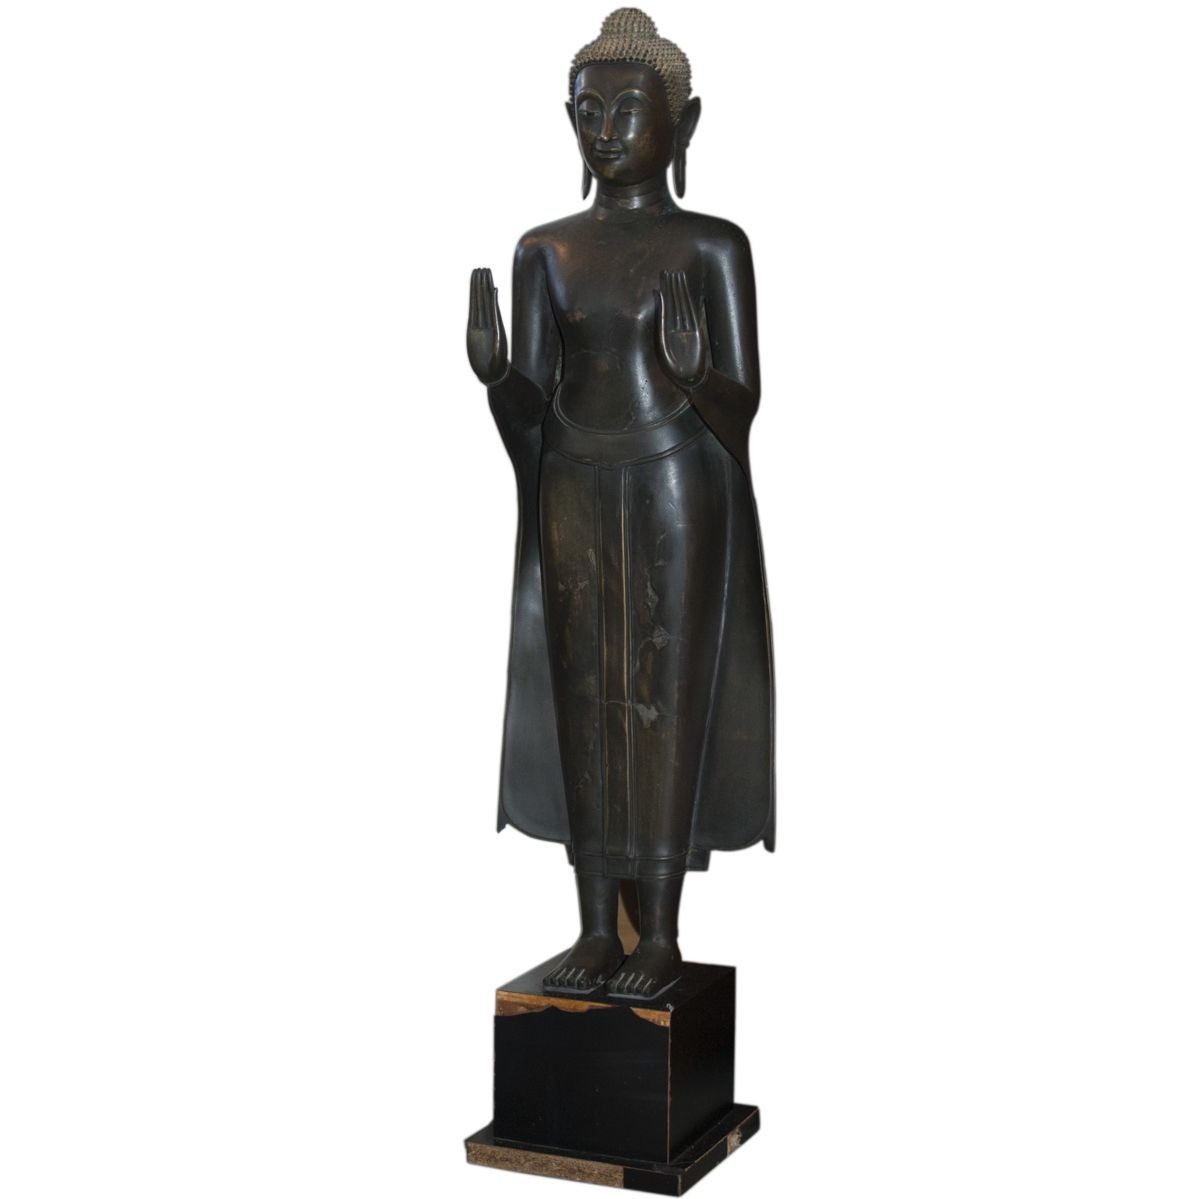 Description antique burmese bronze statue of a standing buddha with description antique burmese bronze statue of a standing buddha with hands outstretched in front to symbolize repelling the biocorpaavc Choice Image